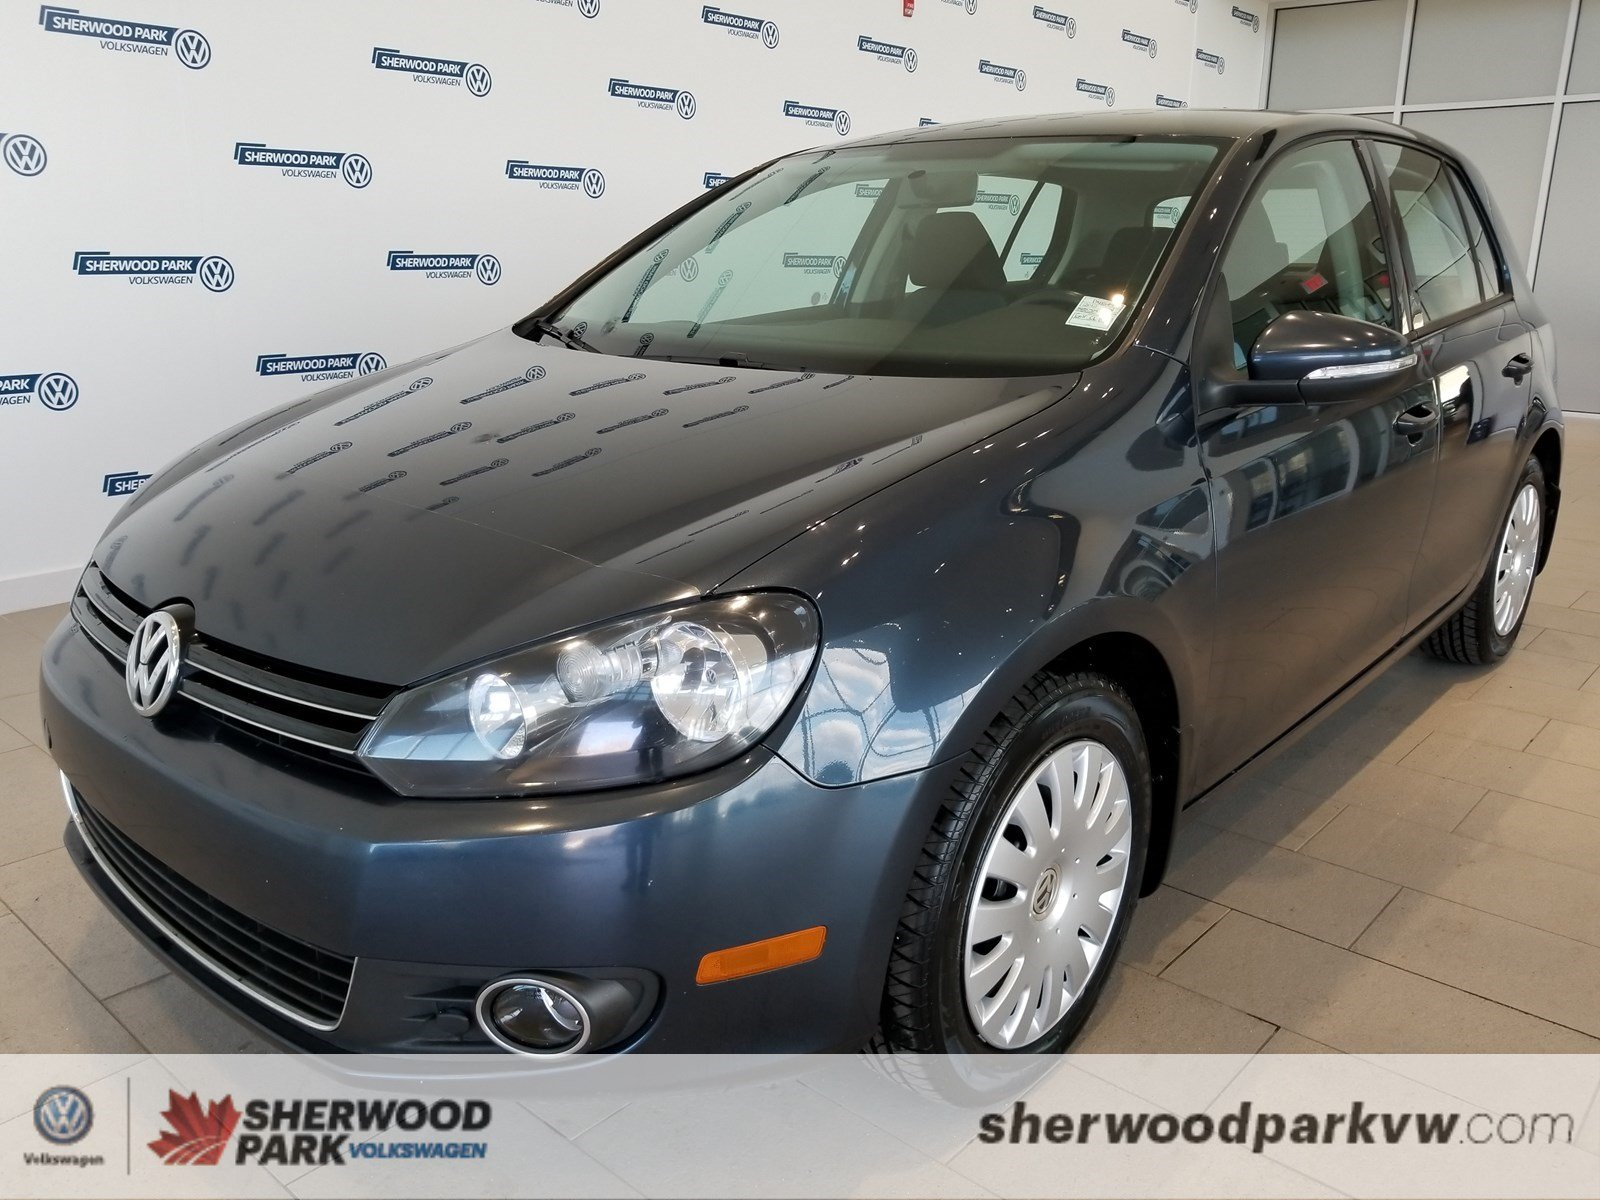 Pre Owned 2012 Volkswagen Golf fortline Hatchback in Sherwood